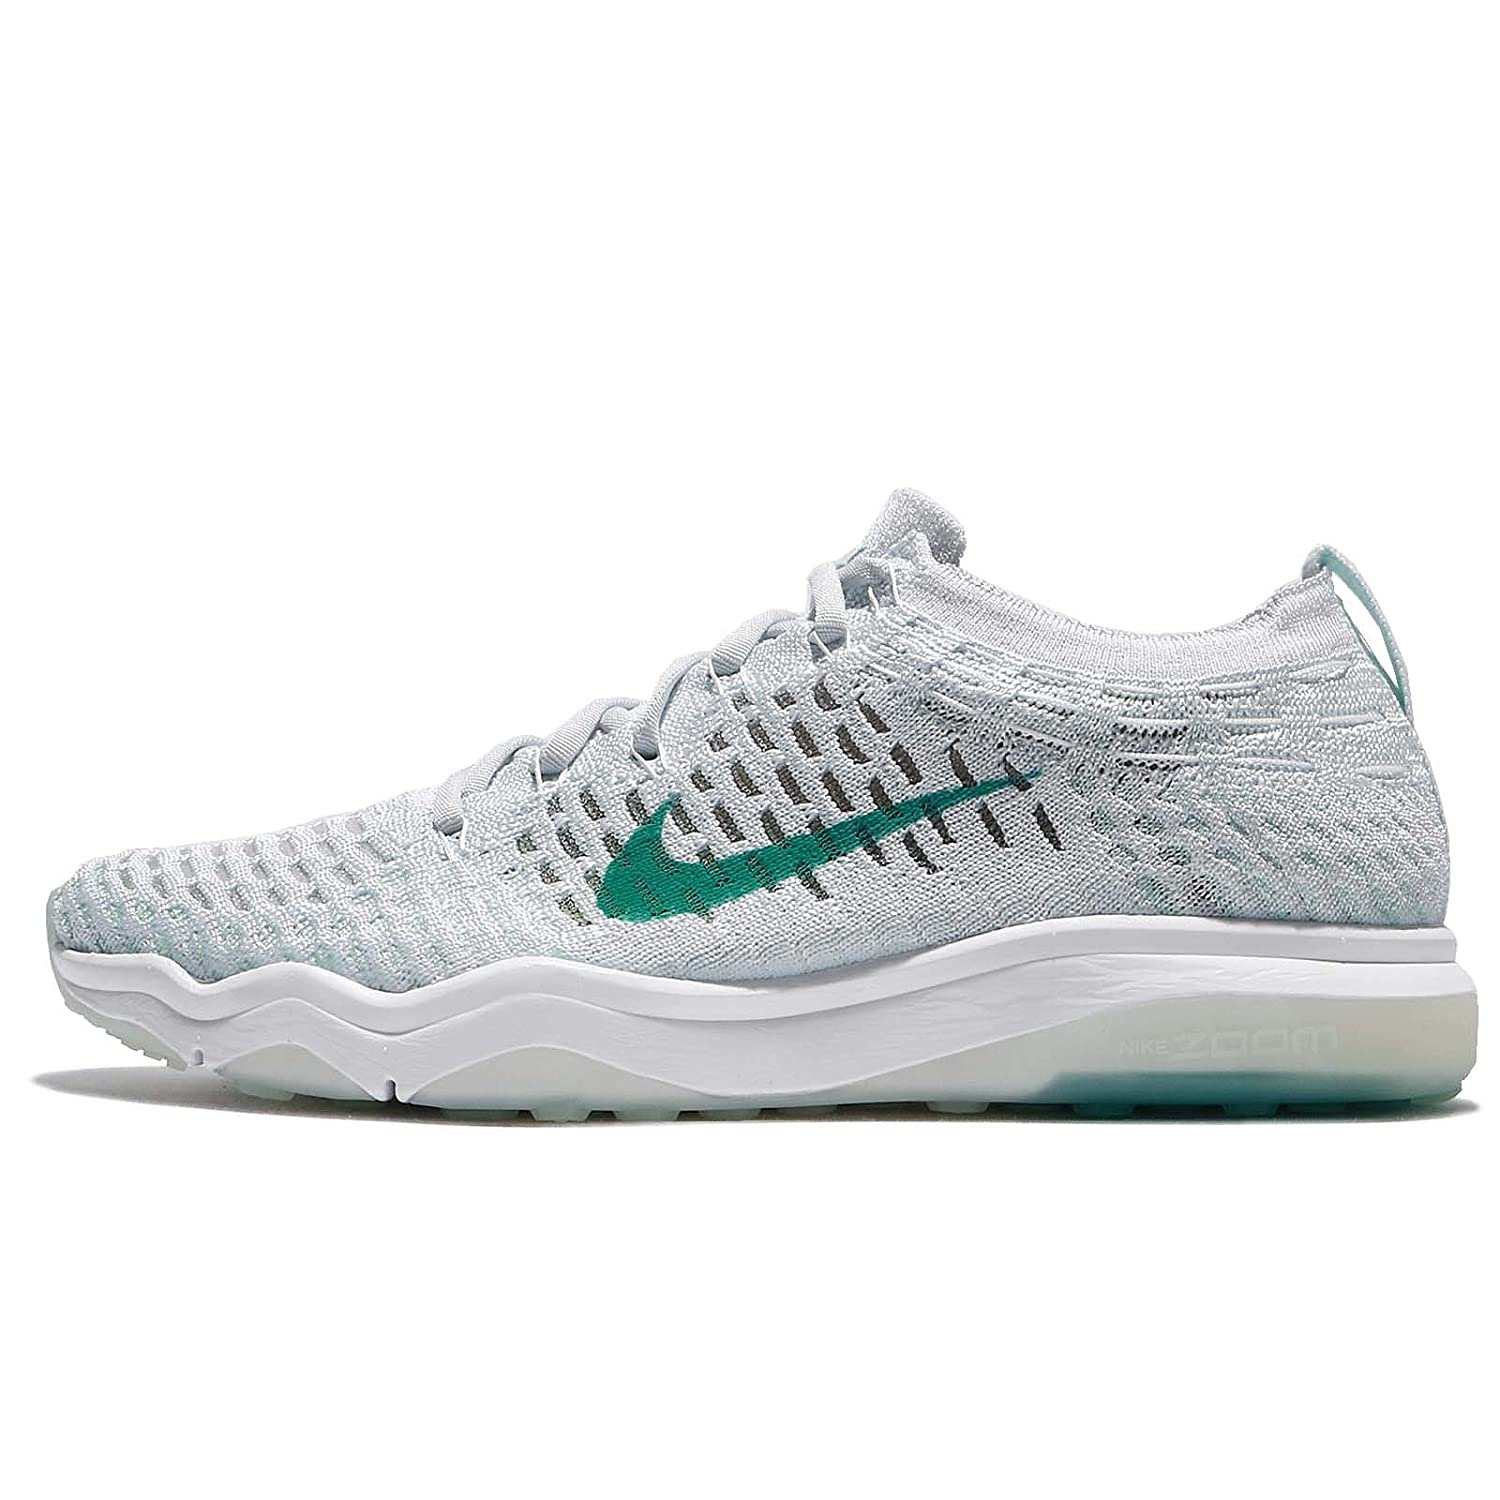 NIKE Women's Air Zoom Fearless Flyknit Running Shoes B07458BT64 7.5 B(M) US|White/Aurora Green